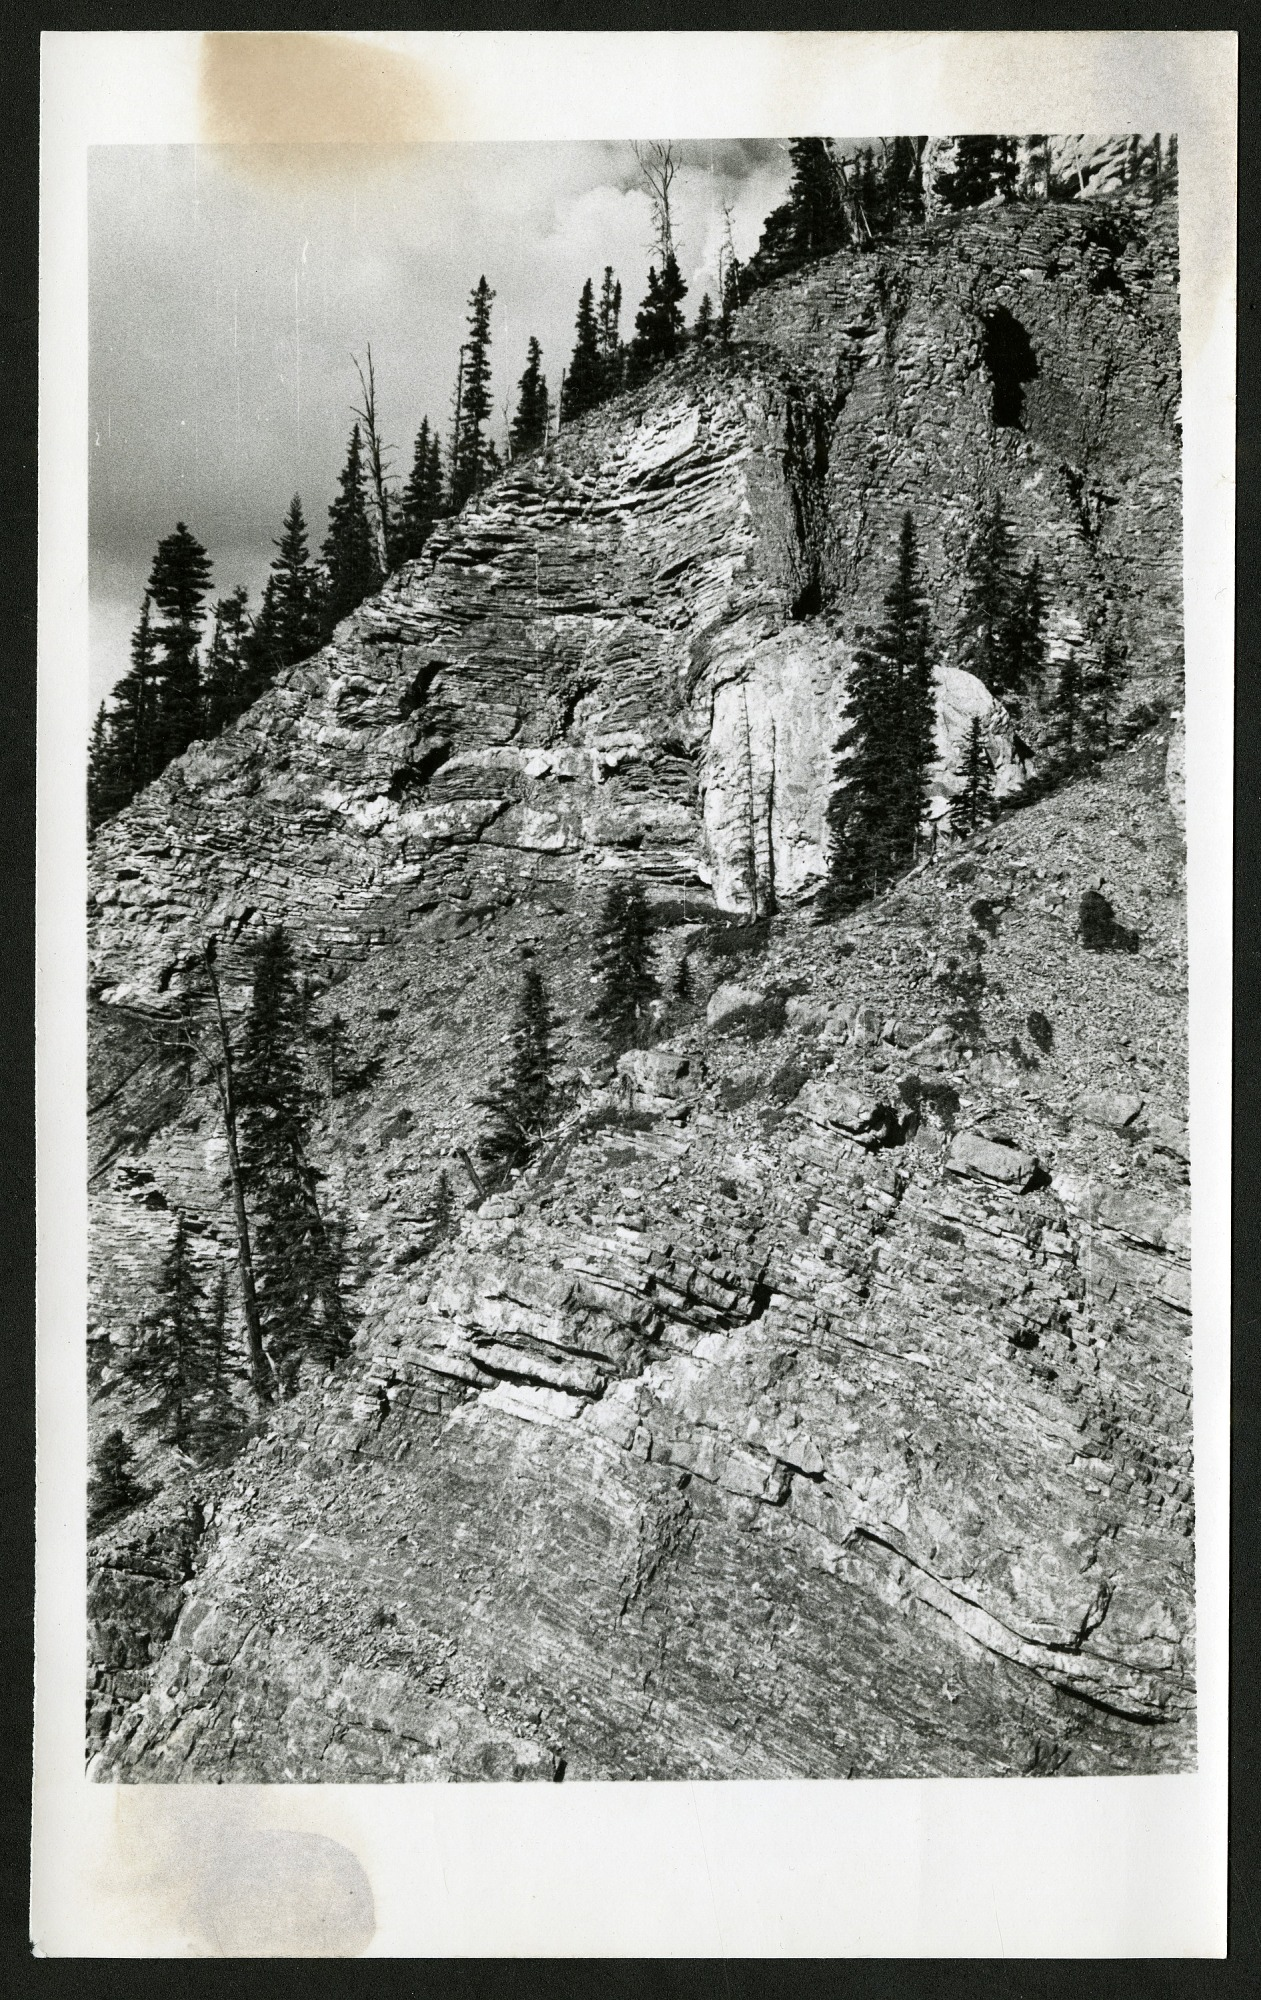 Photographs, Geological Formations, Canadian Rockies, undated